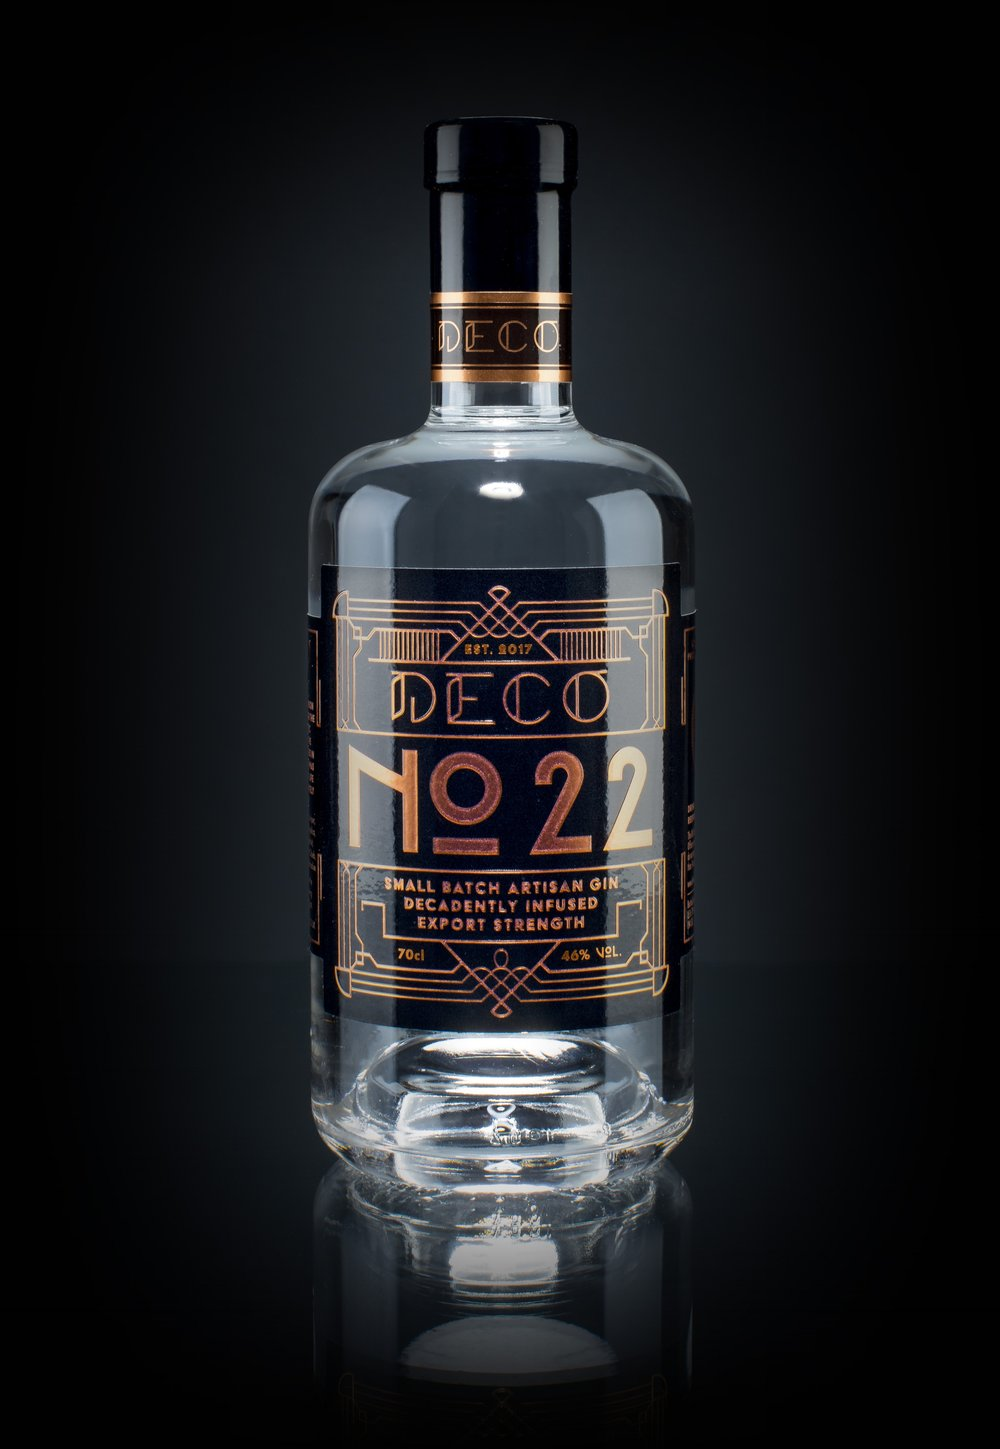 Single-bottle-of Deco-number-22-gin.jpg